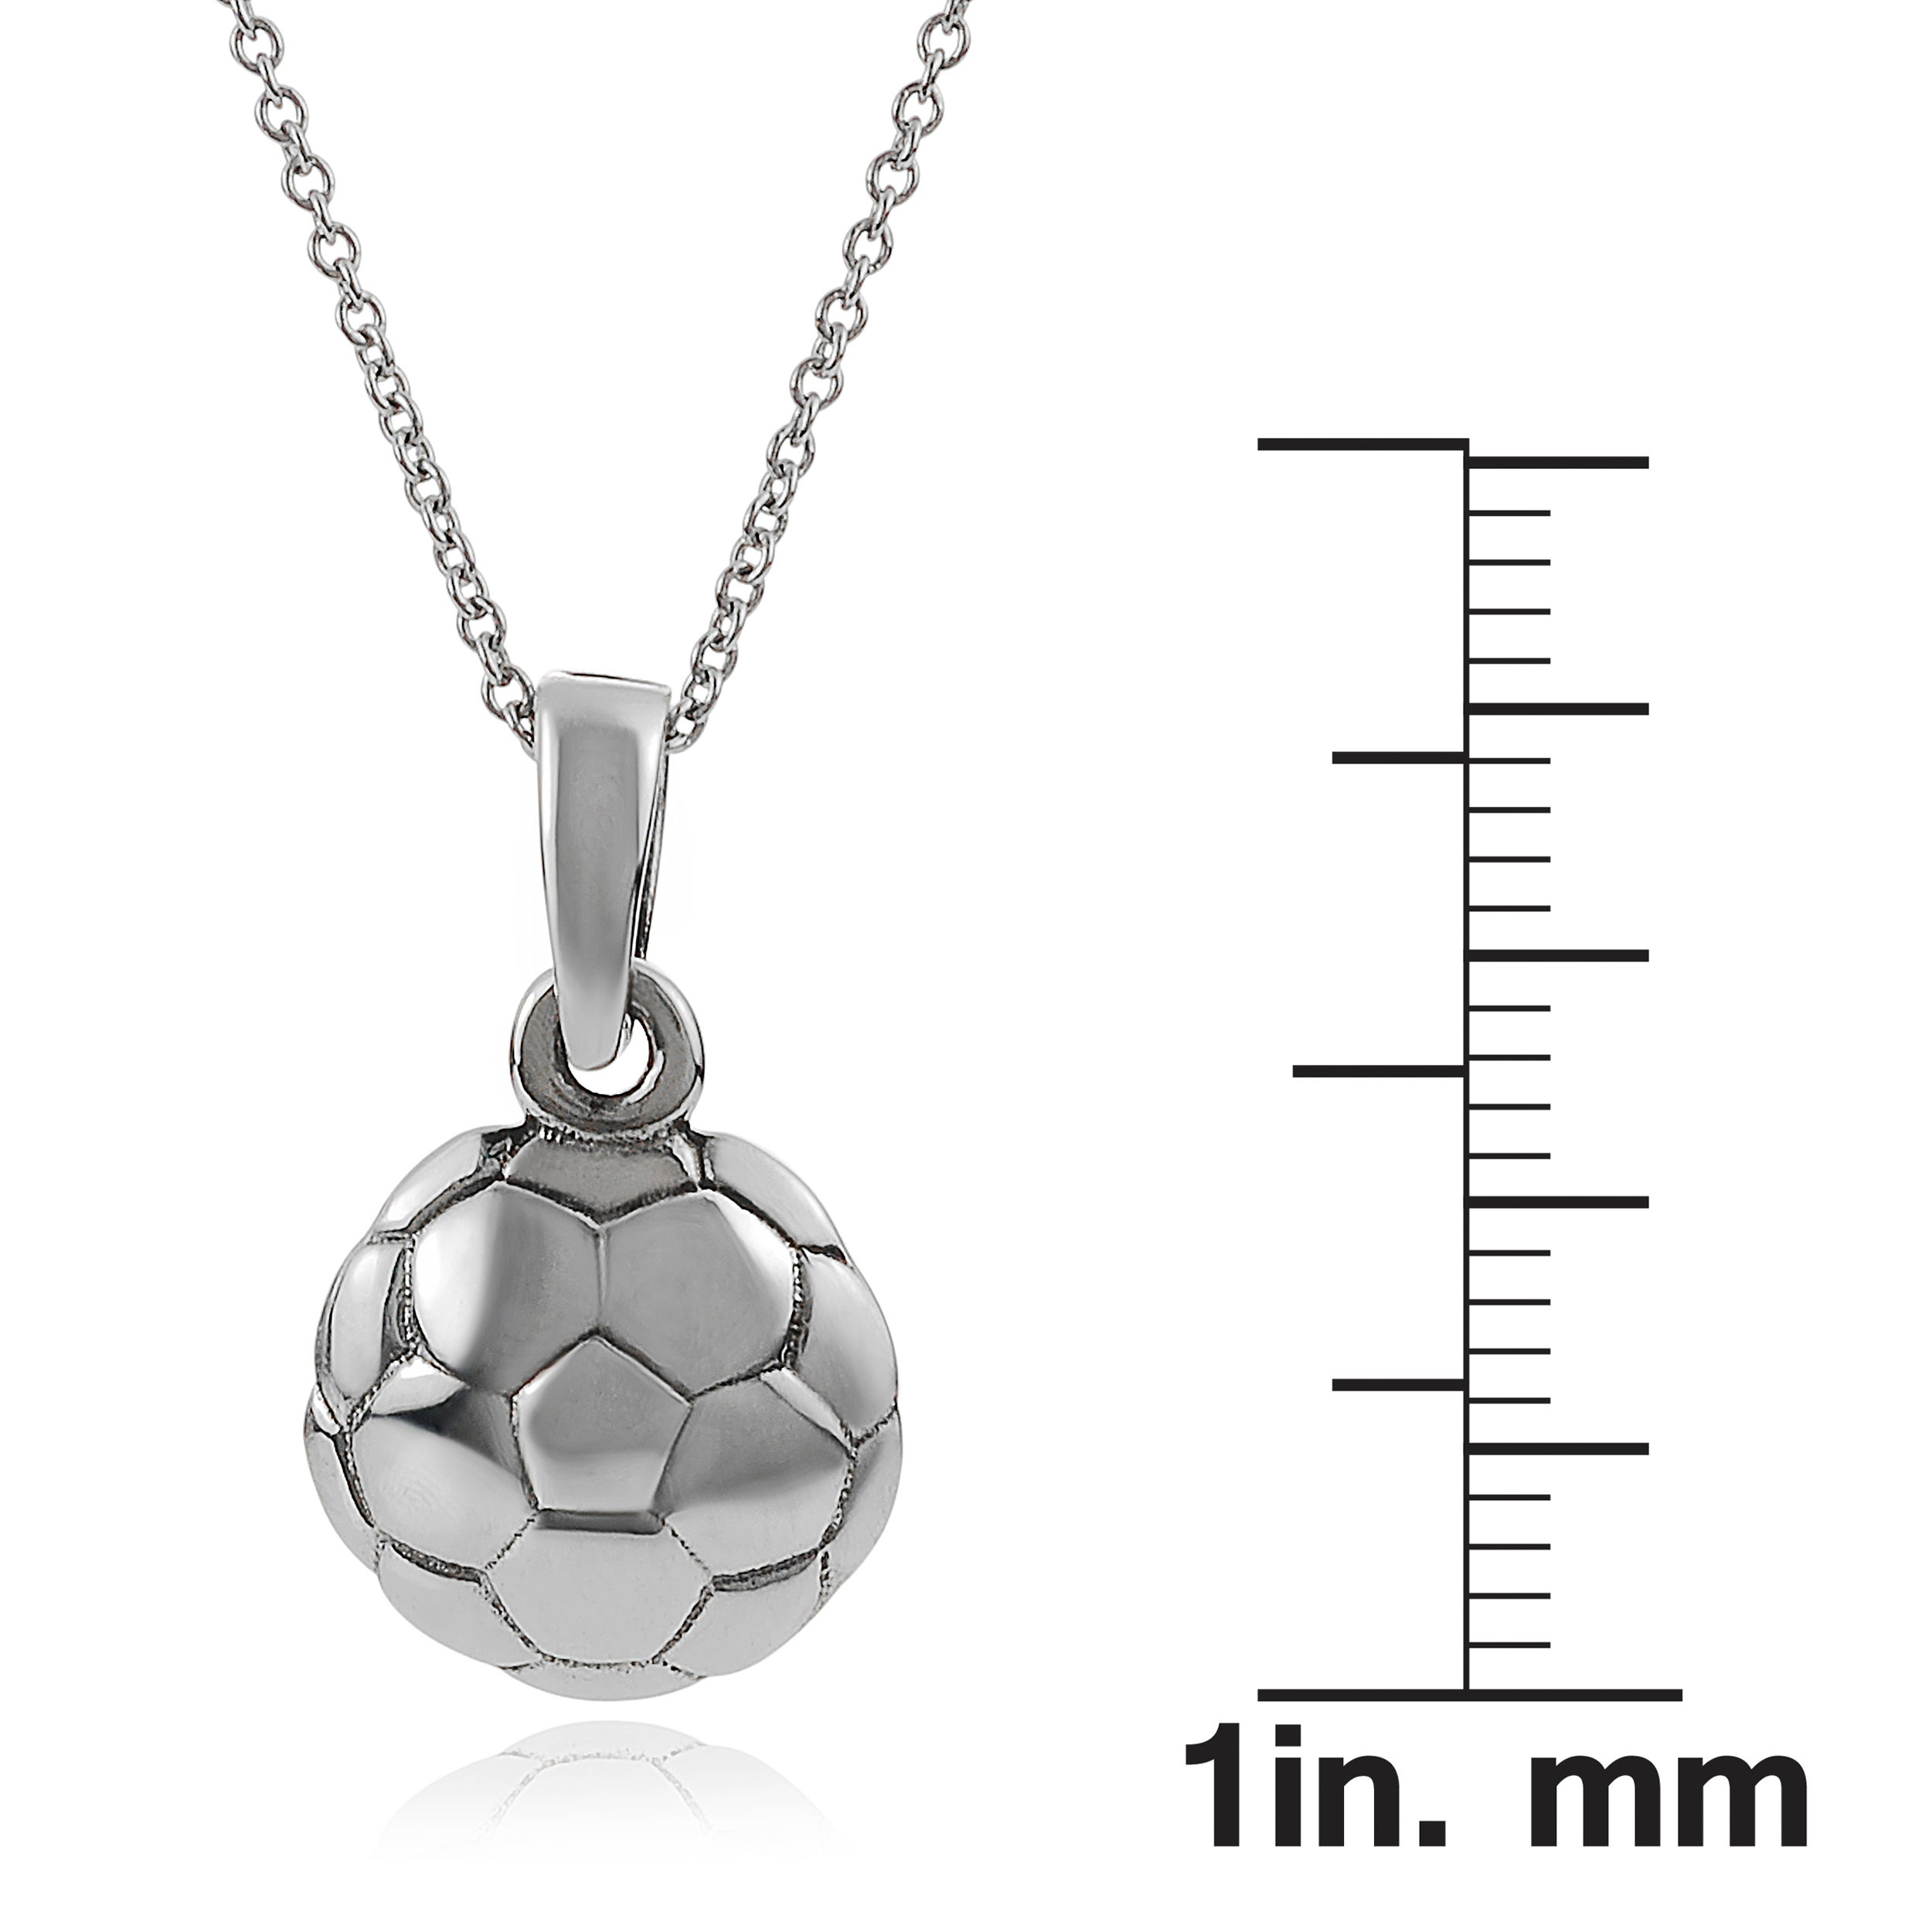 s soccer canada product jewelry emma pendant necklace watches ball overstock overlay molly gold childrens enamel to and children ships